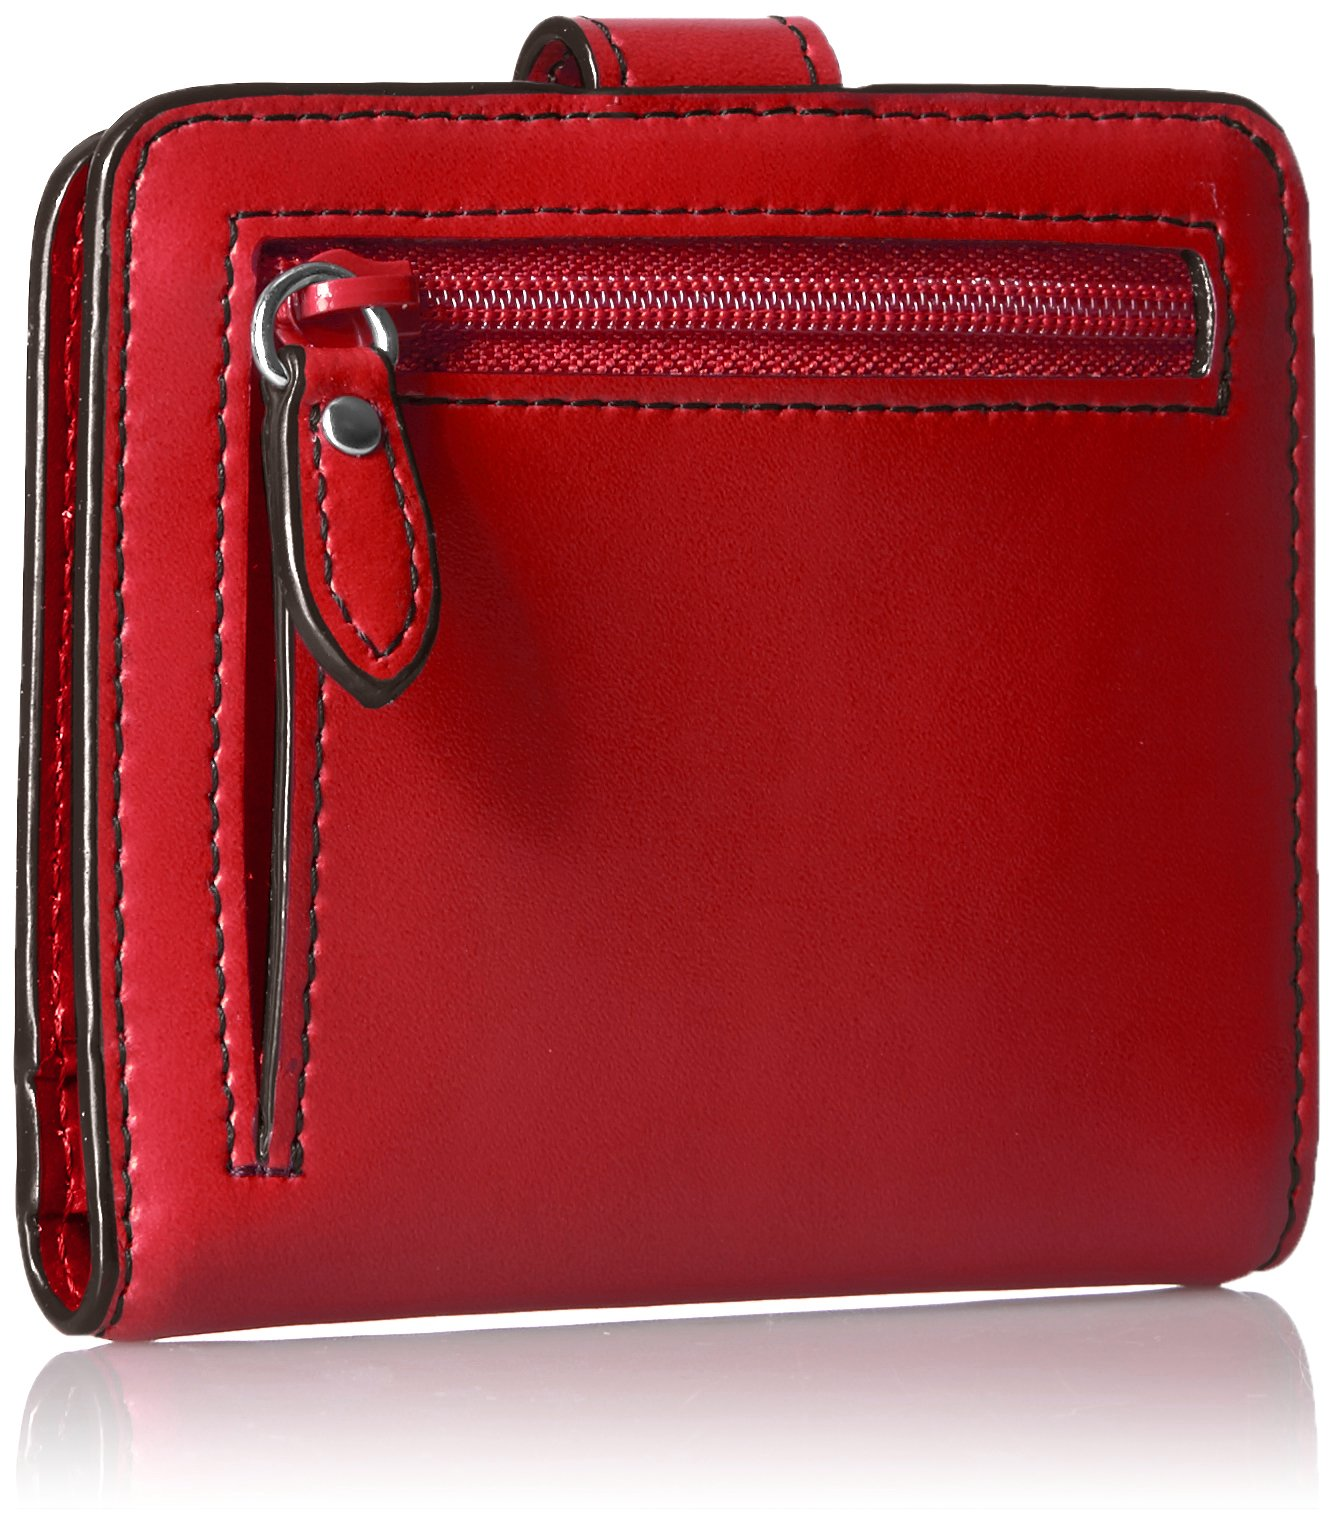 Lodis Audrey Rfid Petite Card Case Wallet Credit Card Holder by Lodis (Image #2)